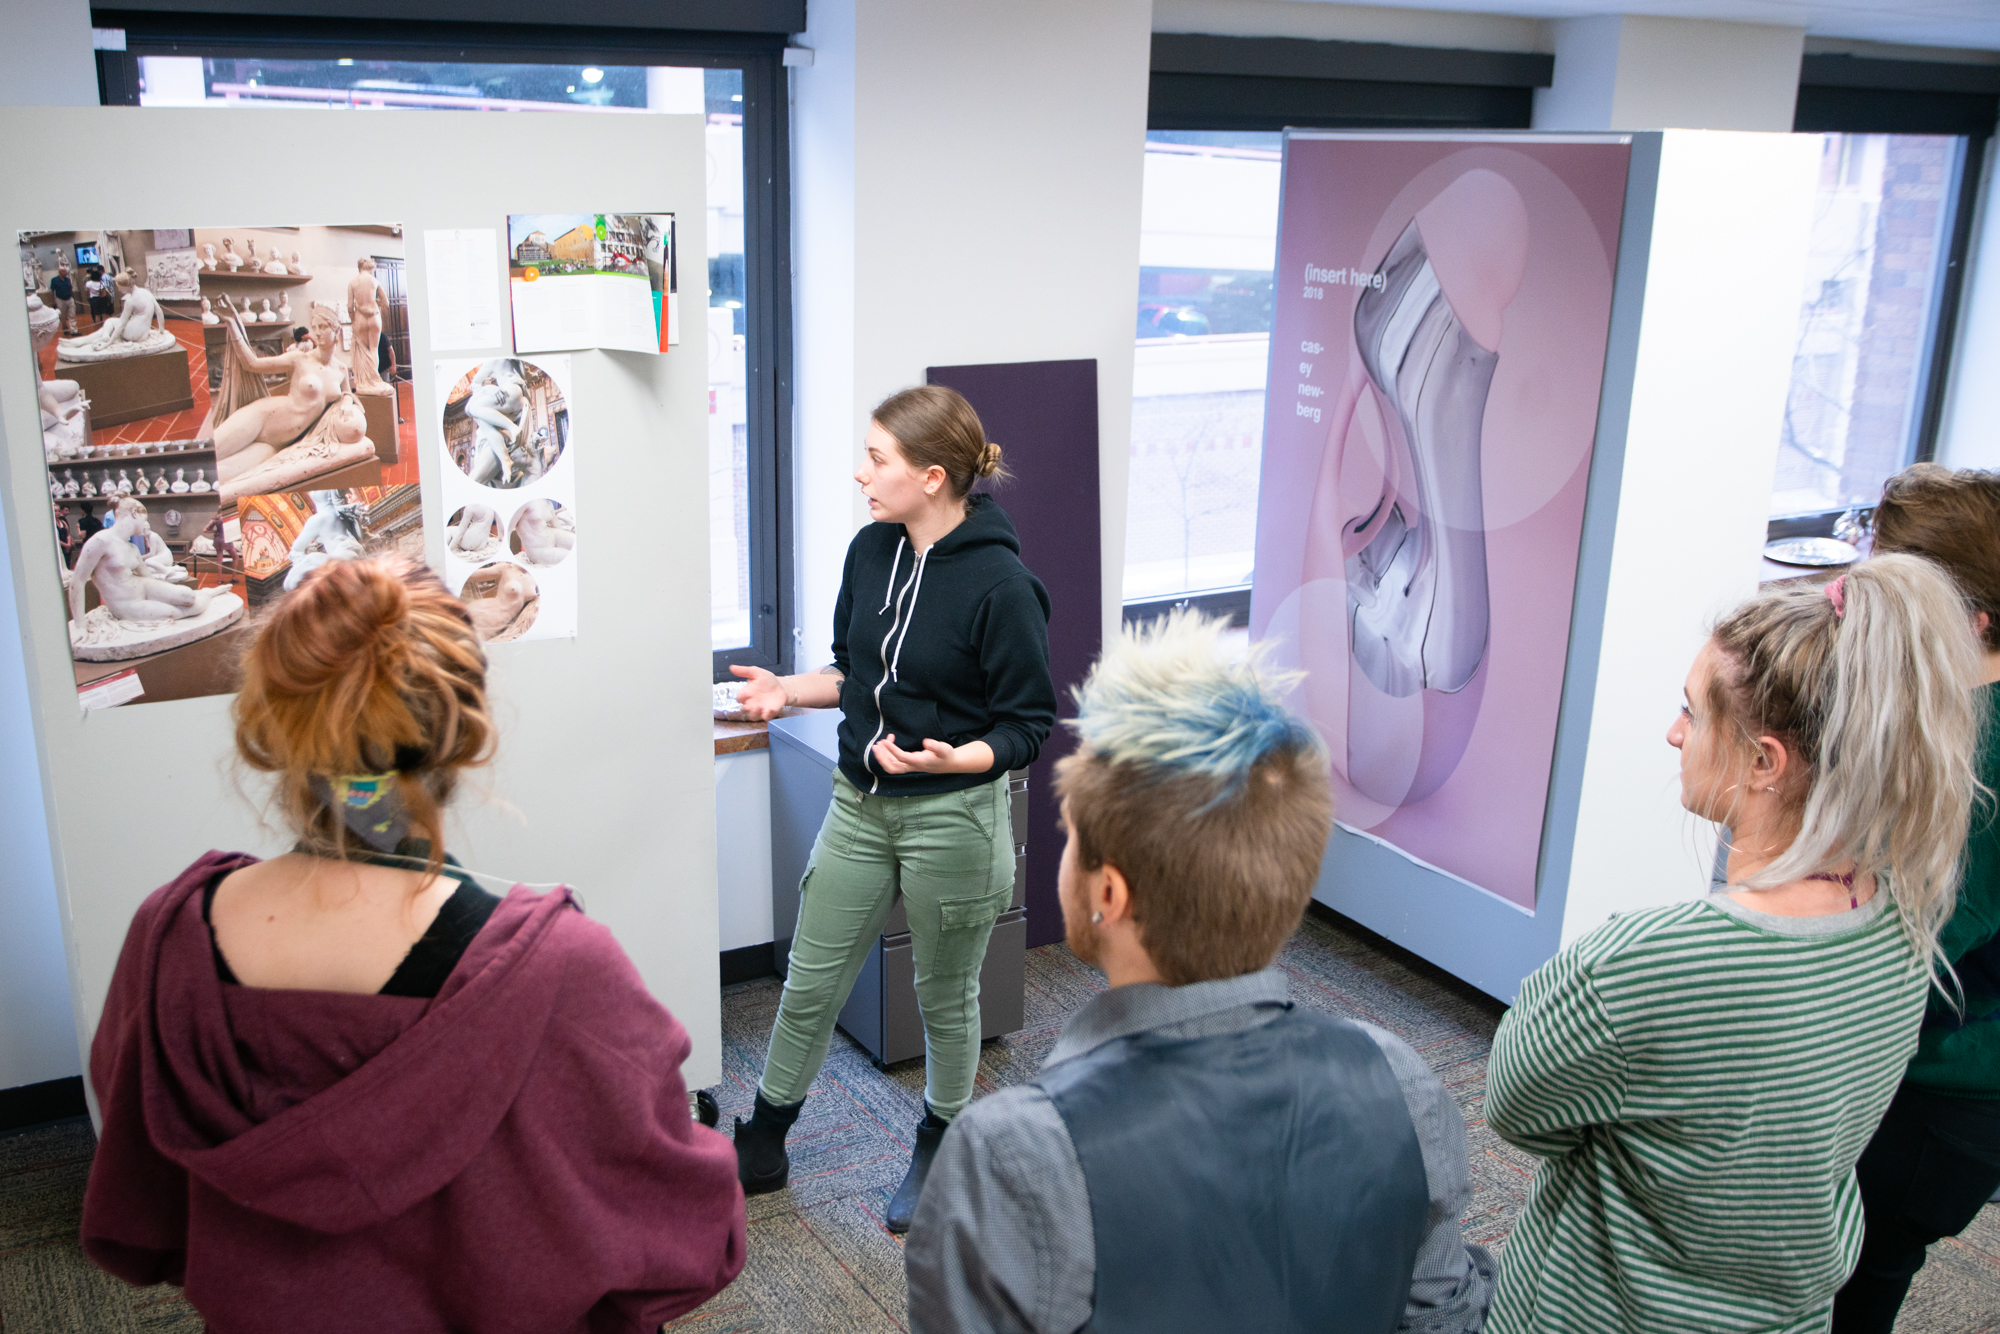 Woman talking to a group of people as she gestures toward a graphic hanging on the all